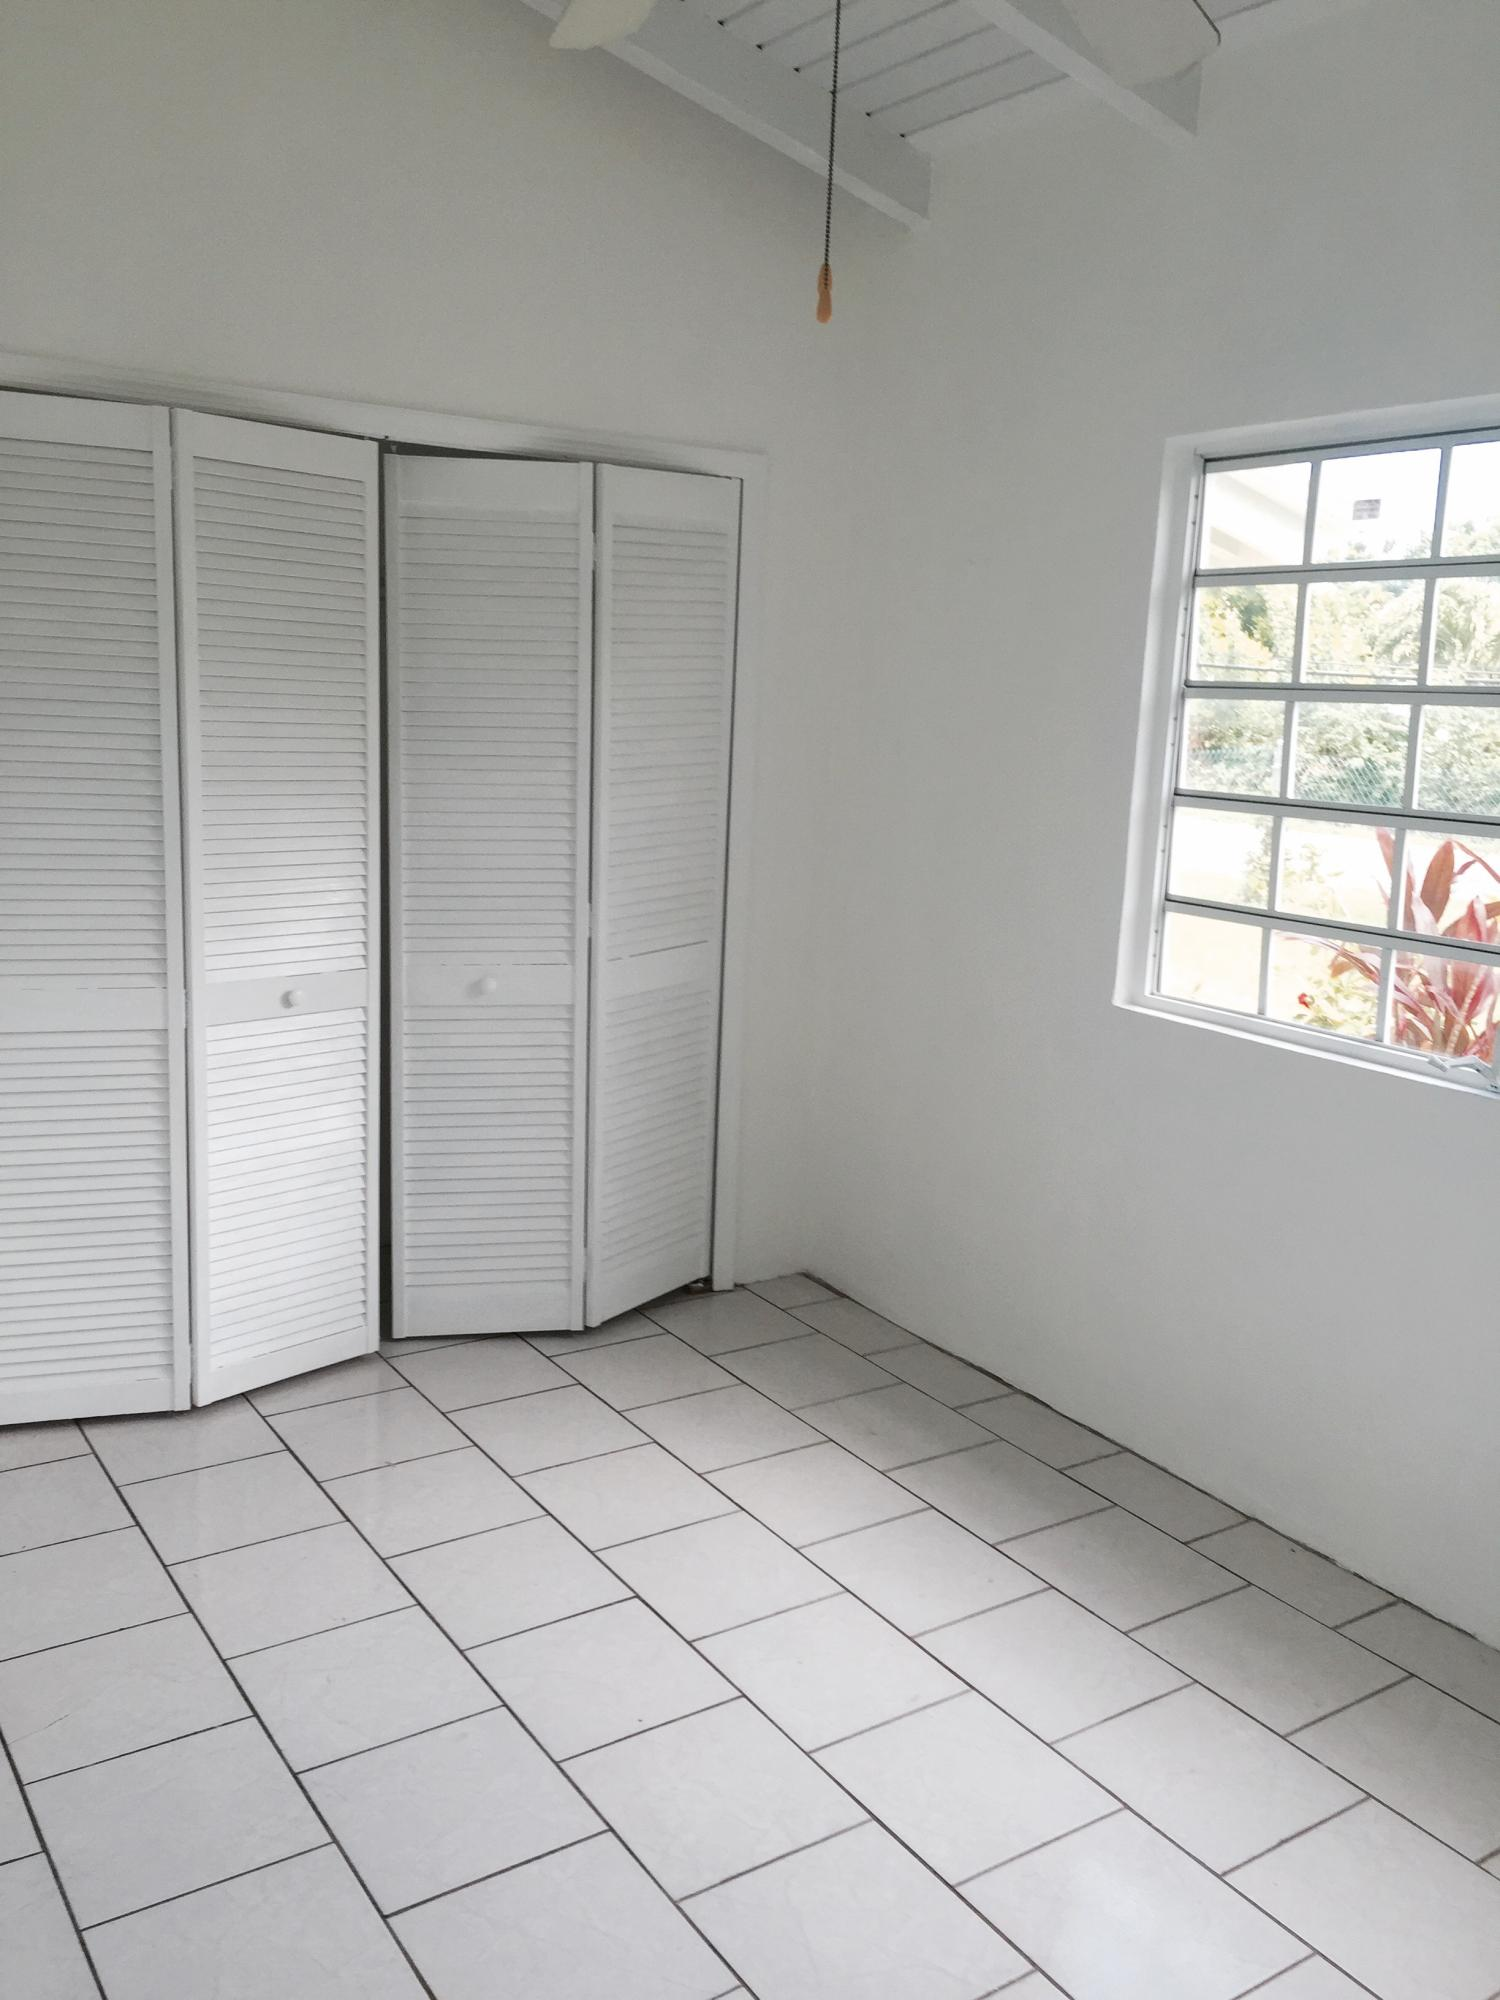 10 2nd bedroon closet space